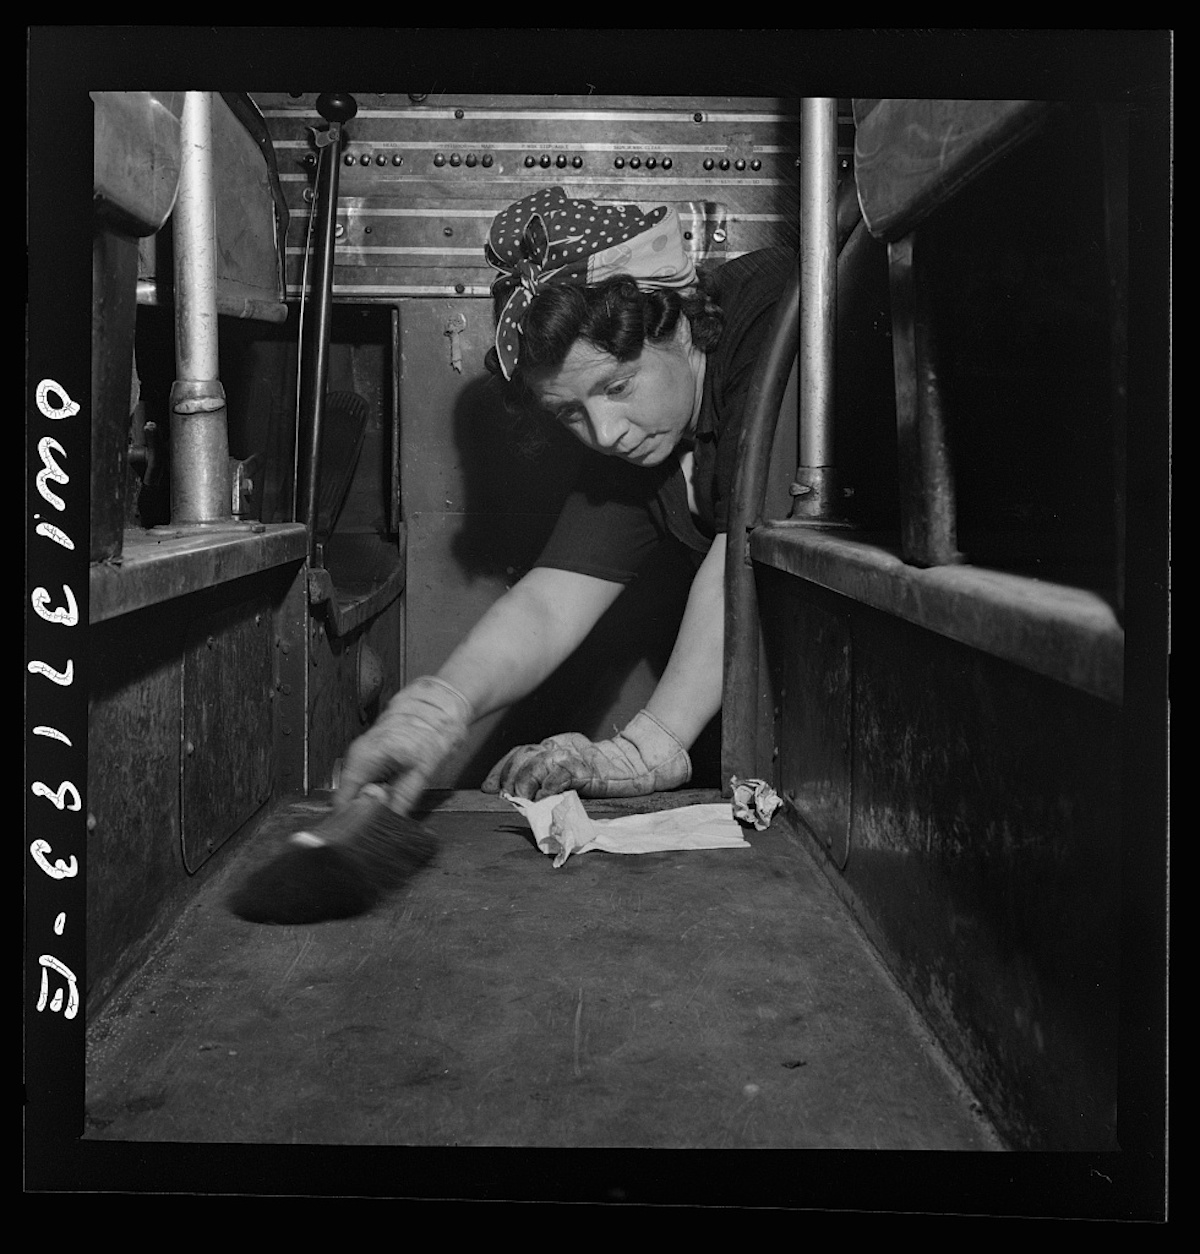 Pittsburgh, Pennsylvania. A charwoman who cleans buses sweeping the floor of a bus at the Greyhound garage